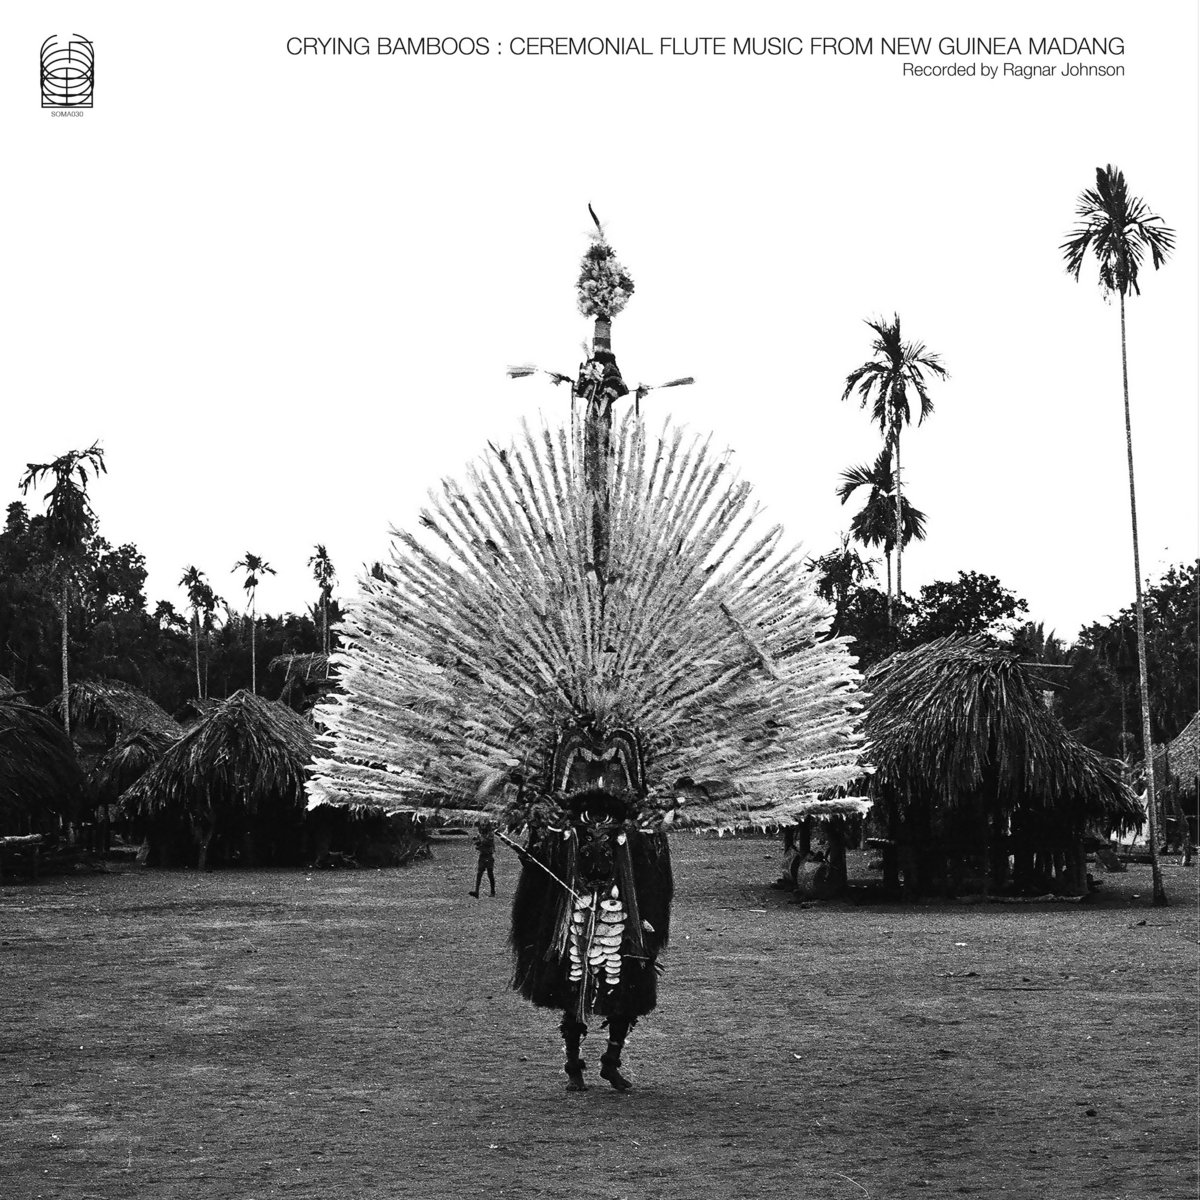 Crying Bamboos: Ceremonial Flute Music from New Guinea: Madang